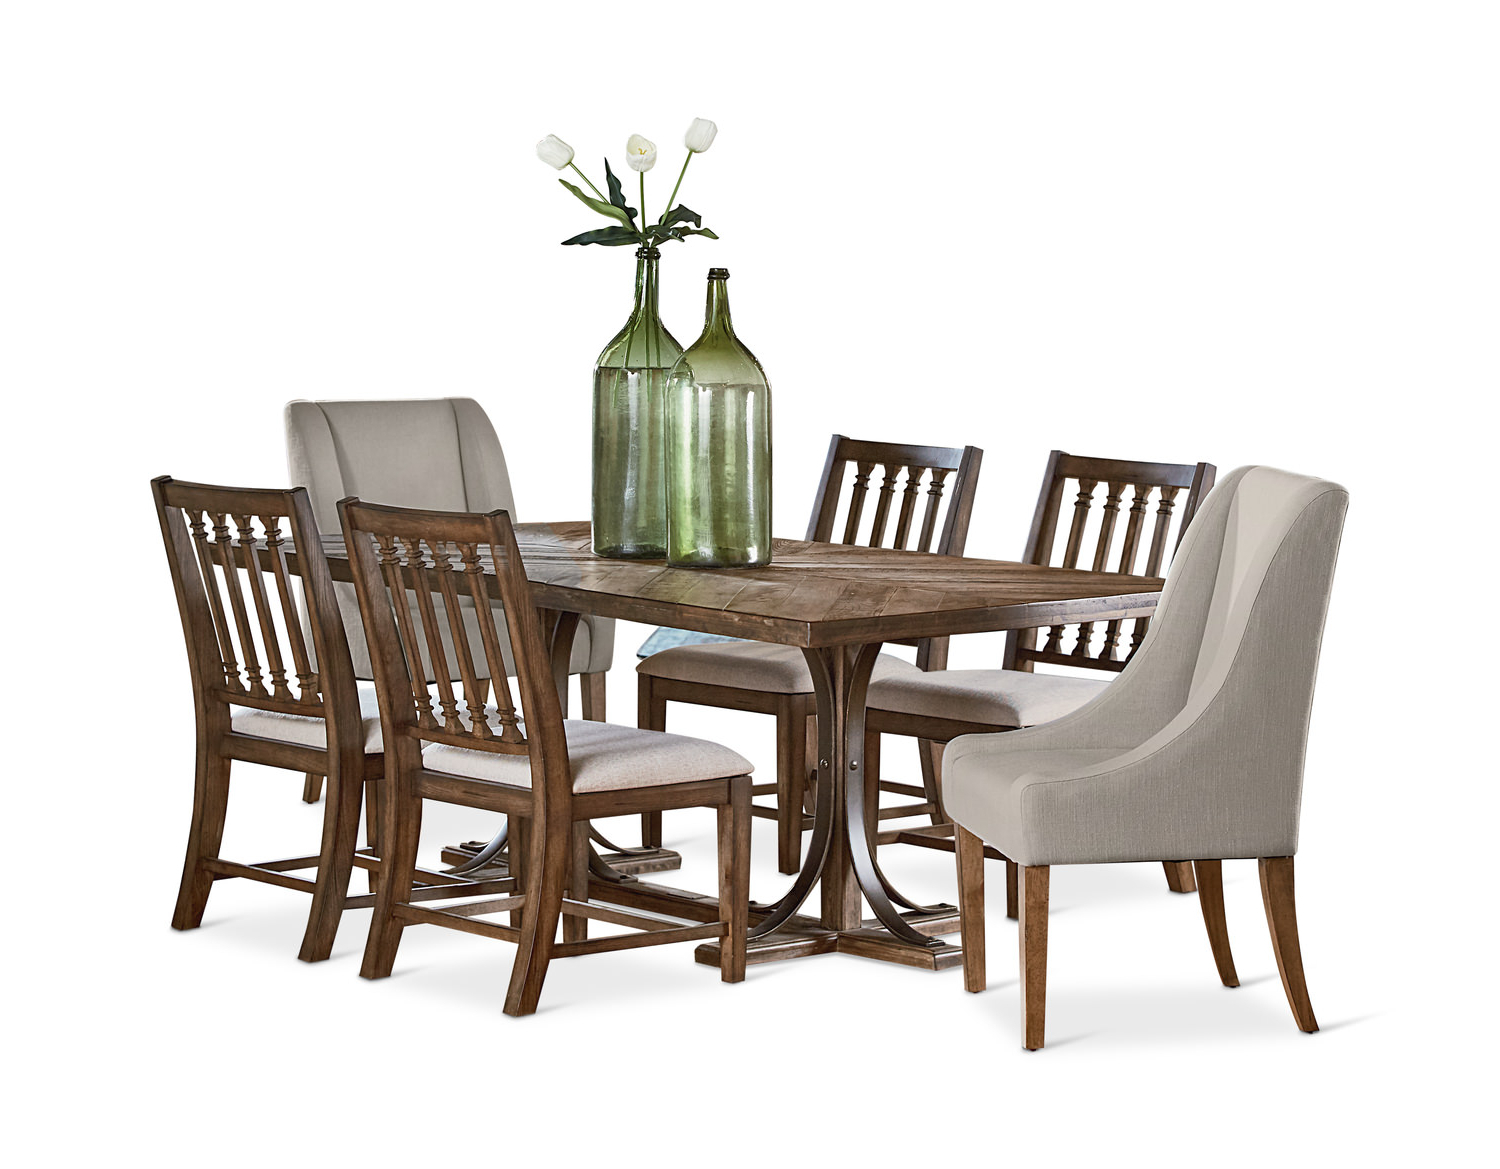 Fashionable Trestle Dining Table With 4 Revival Side And (Gallery 13 of 20)